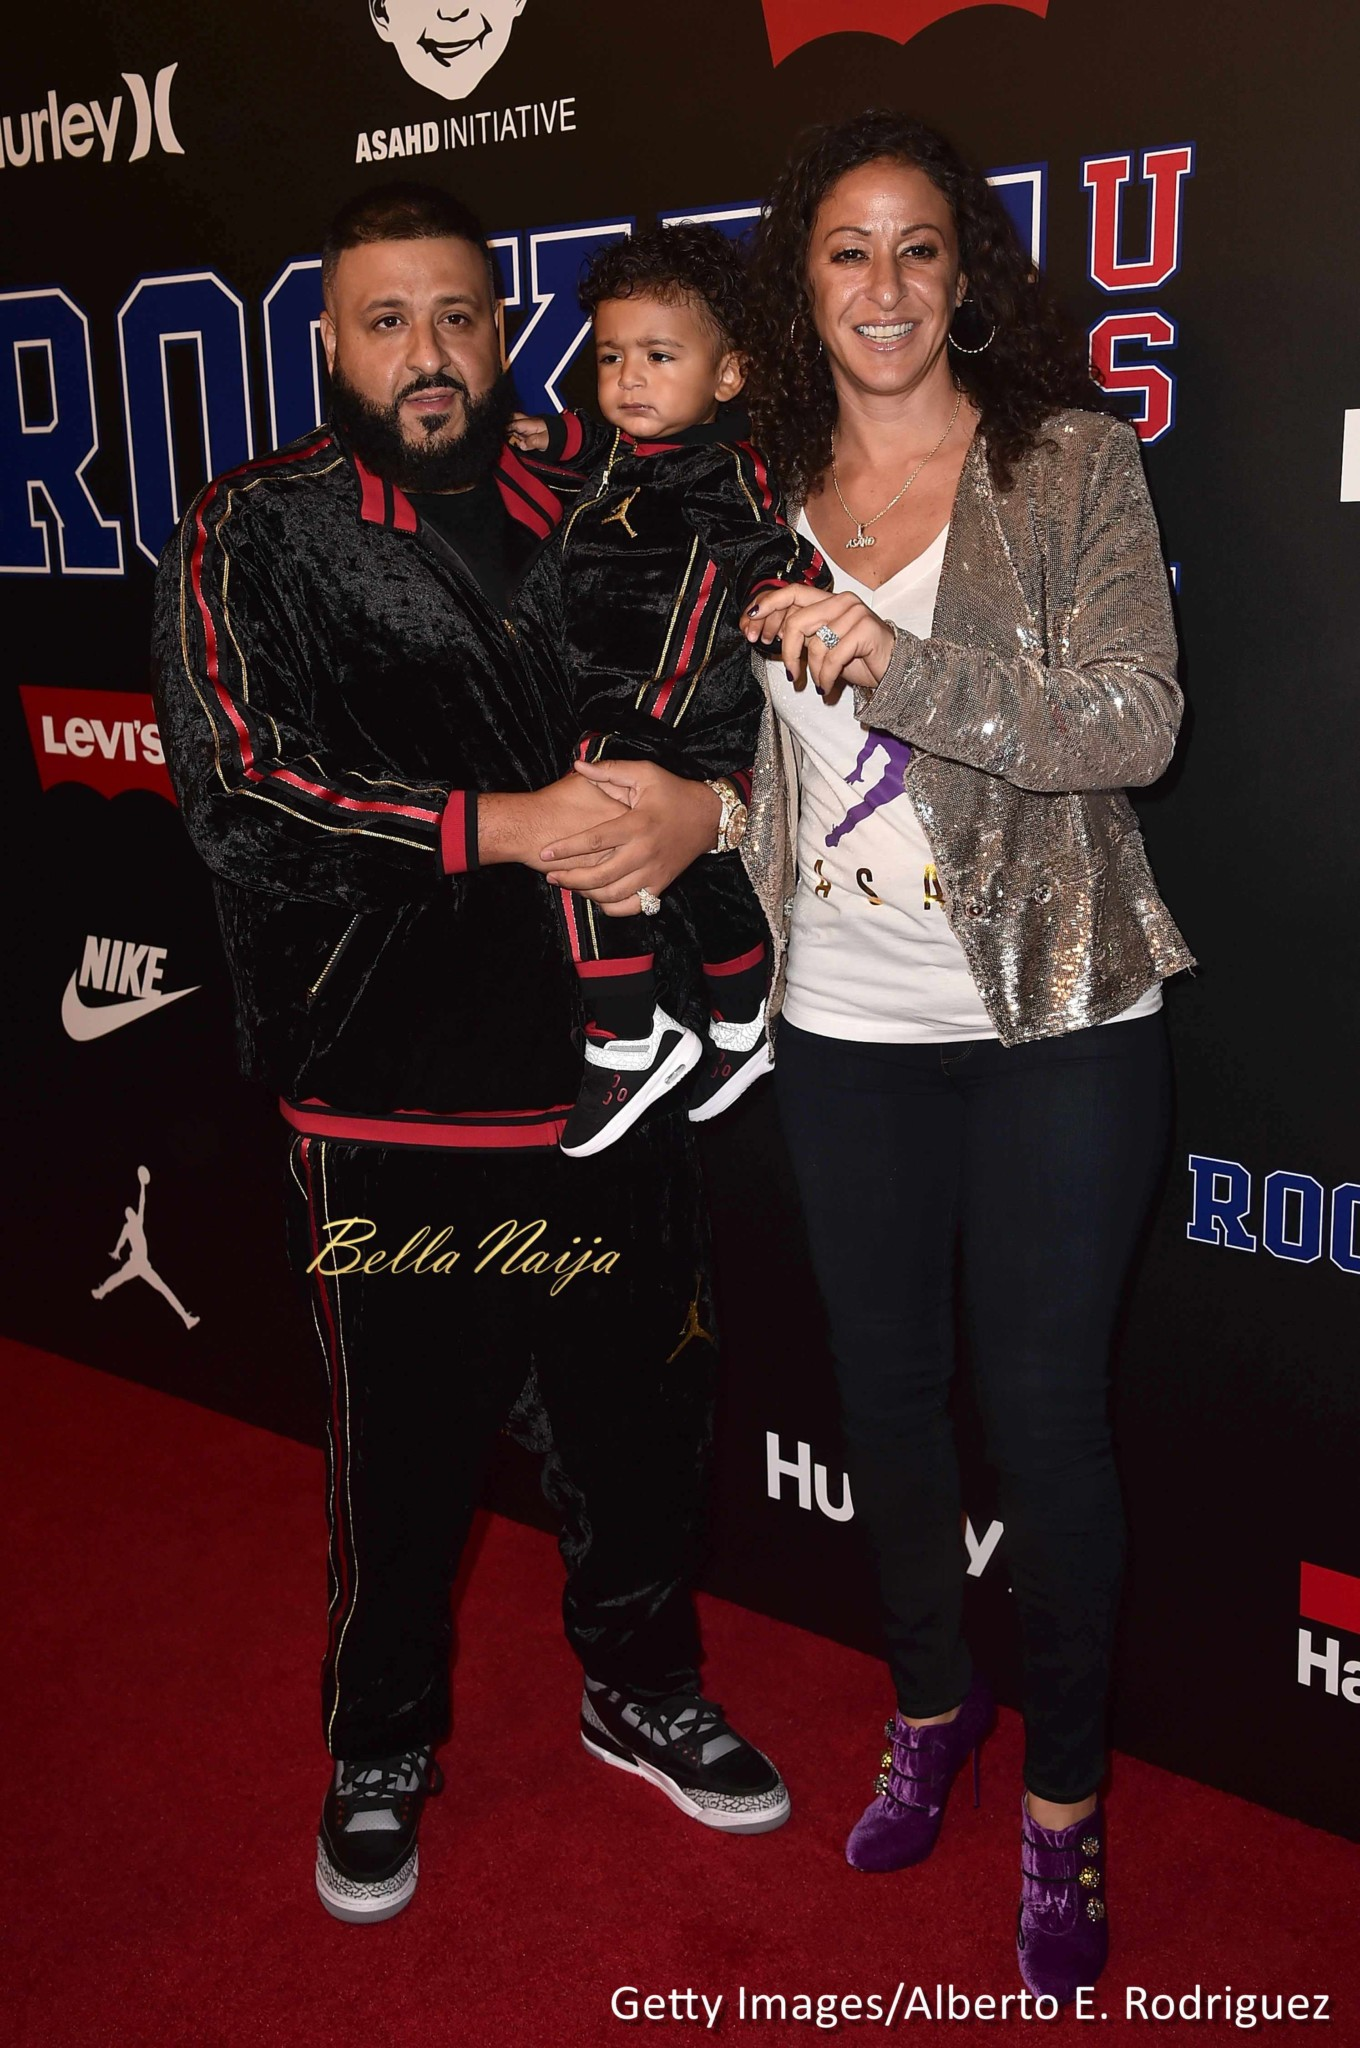 Mini Mogul! Asahd Khaled is the New Face of Jordan Brand's Kid Apparel Line